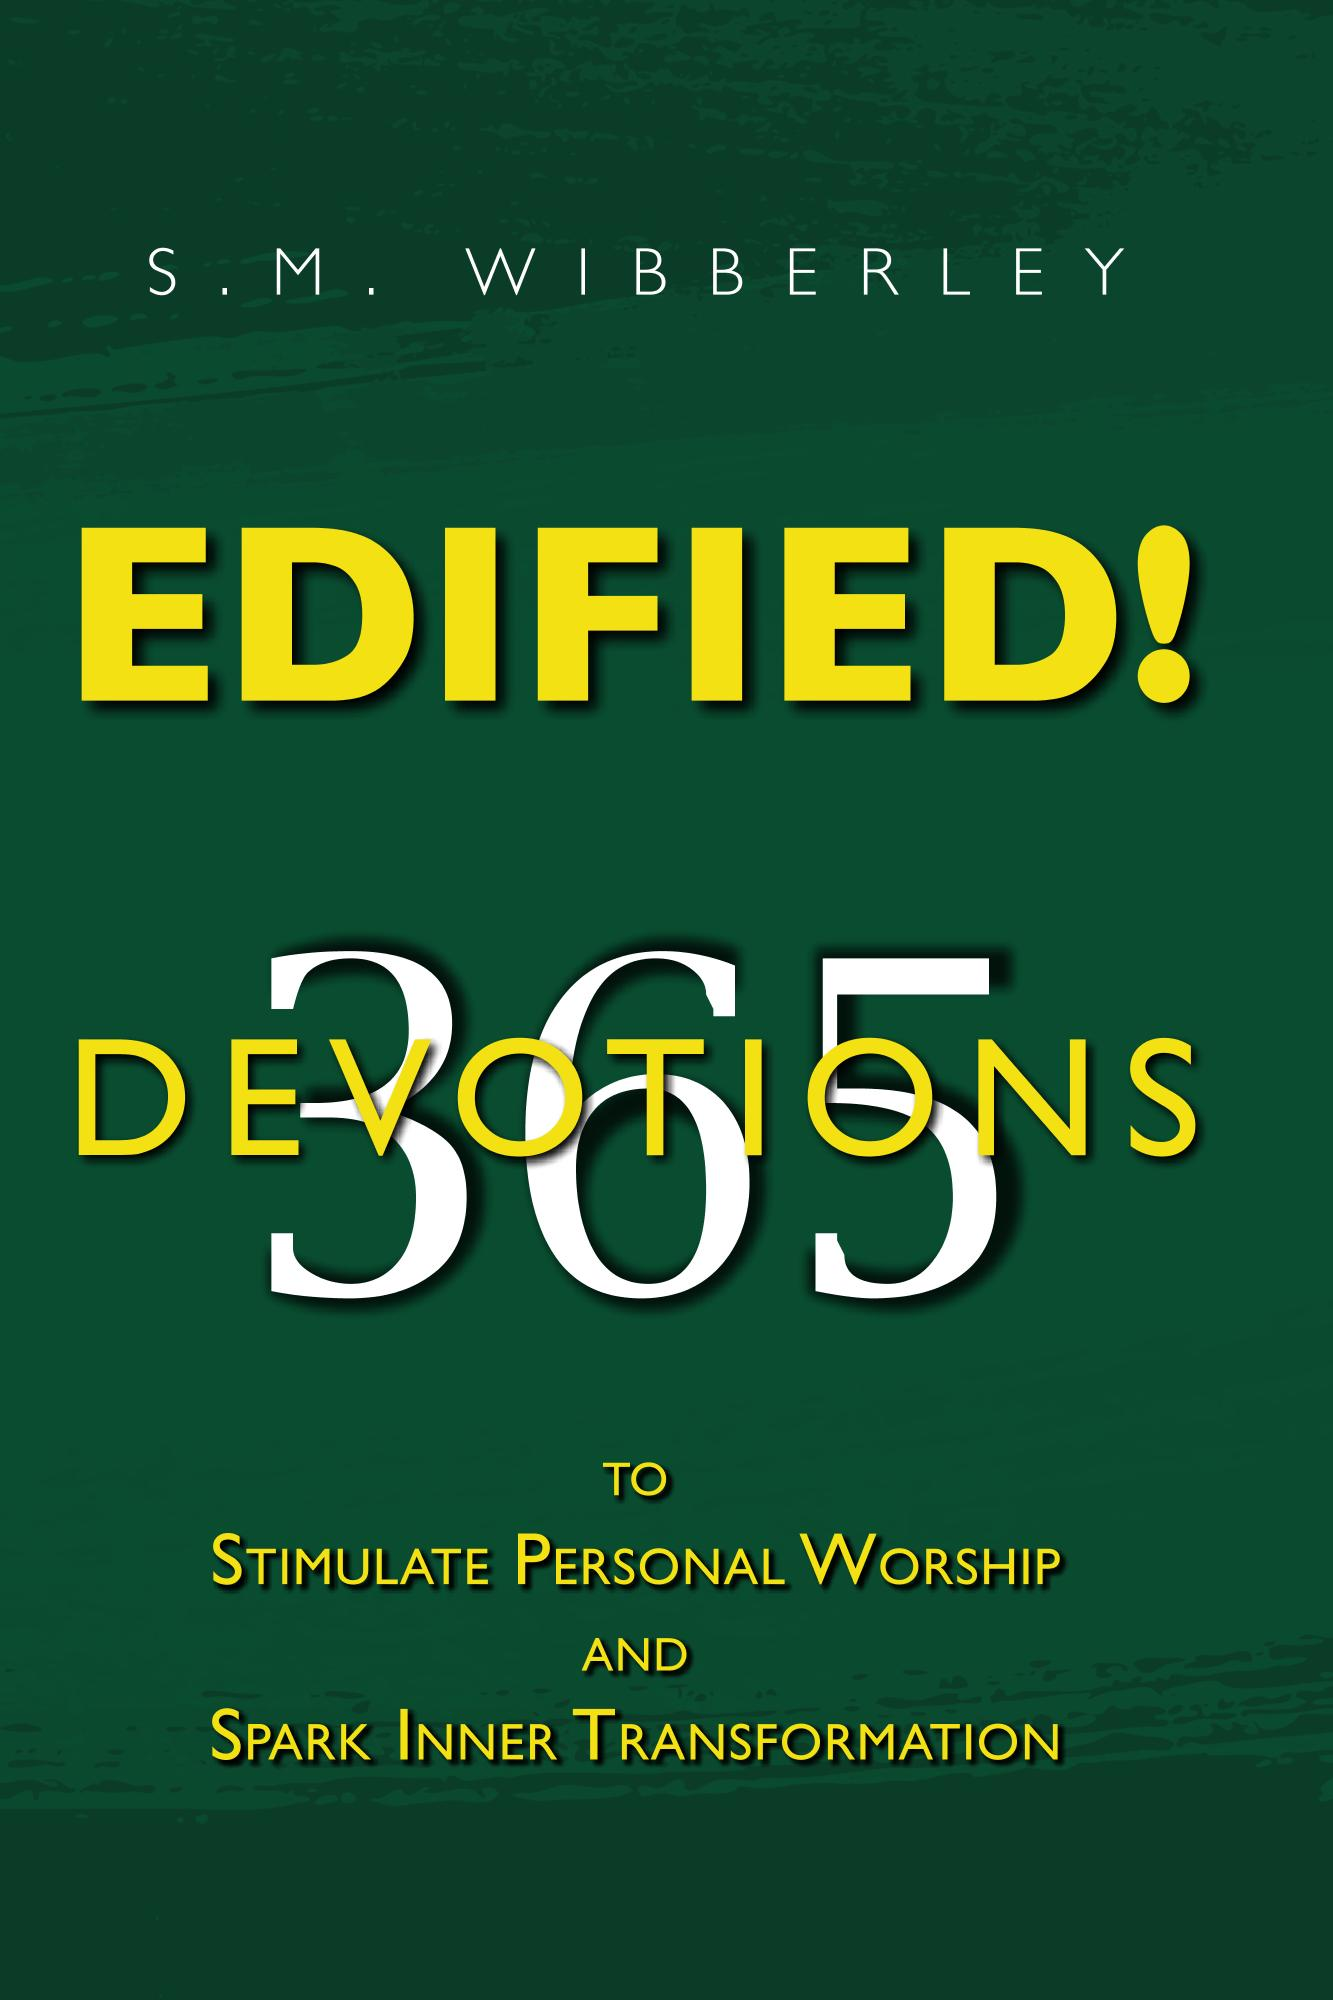 Edified! 365 Devotions to stimulate personal worship and spark inner transformation